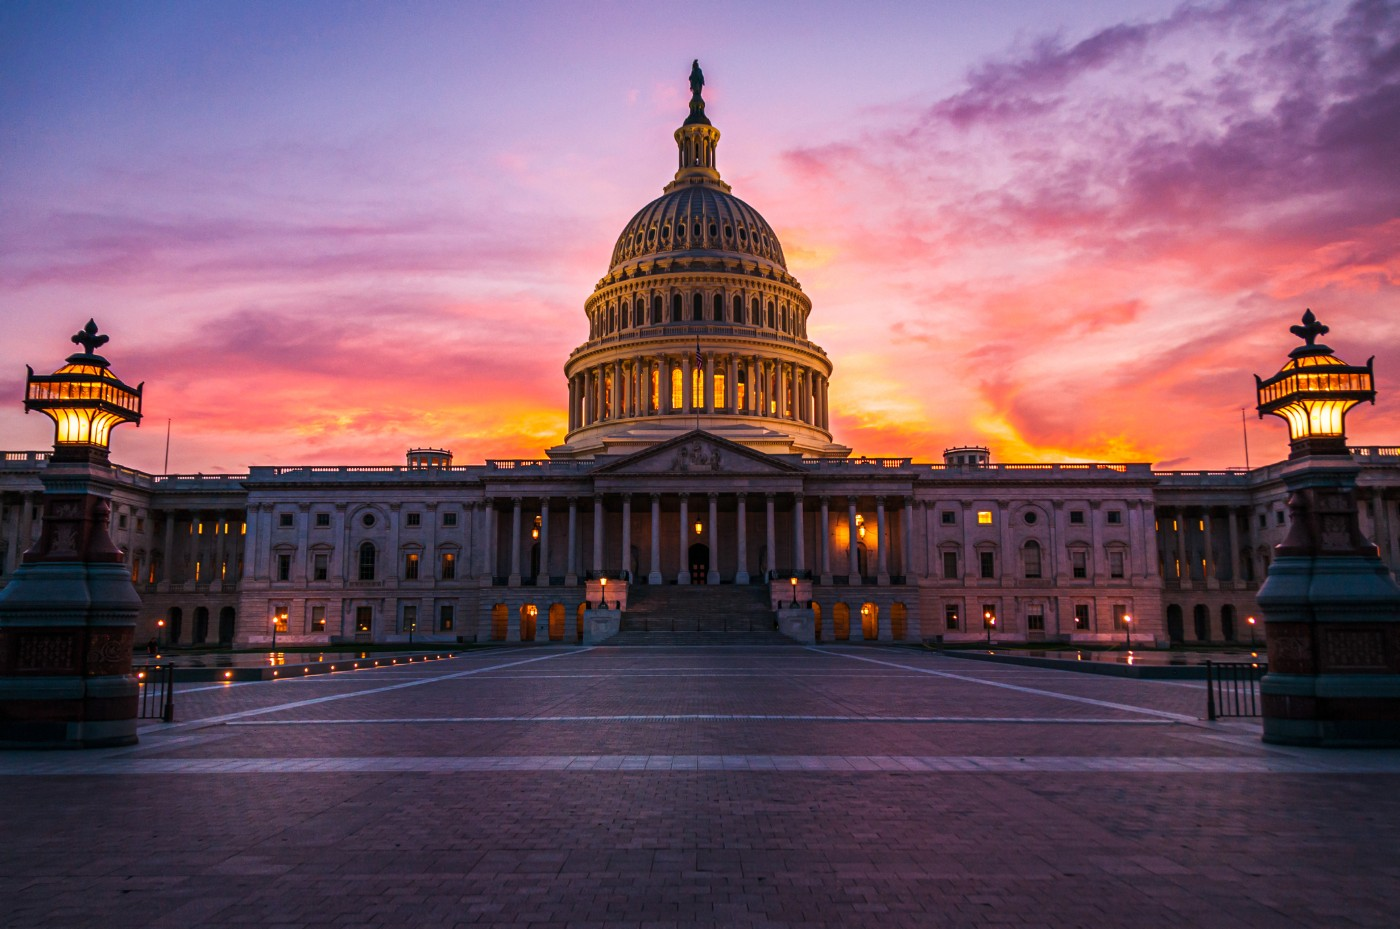 https://tickertapecdn.tdameritrade.com/assets/images/pages/md/capitol sunrise: 9 theses to watch